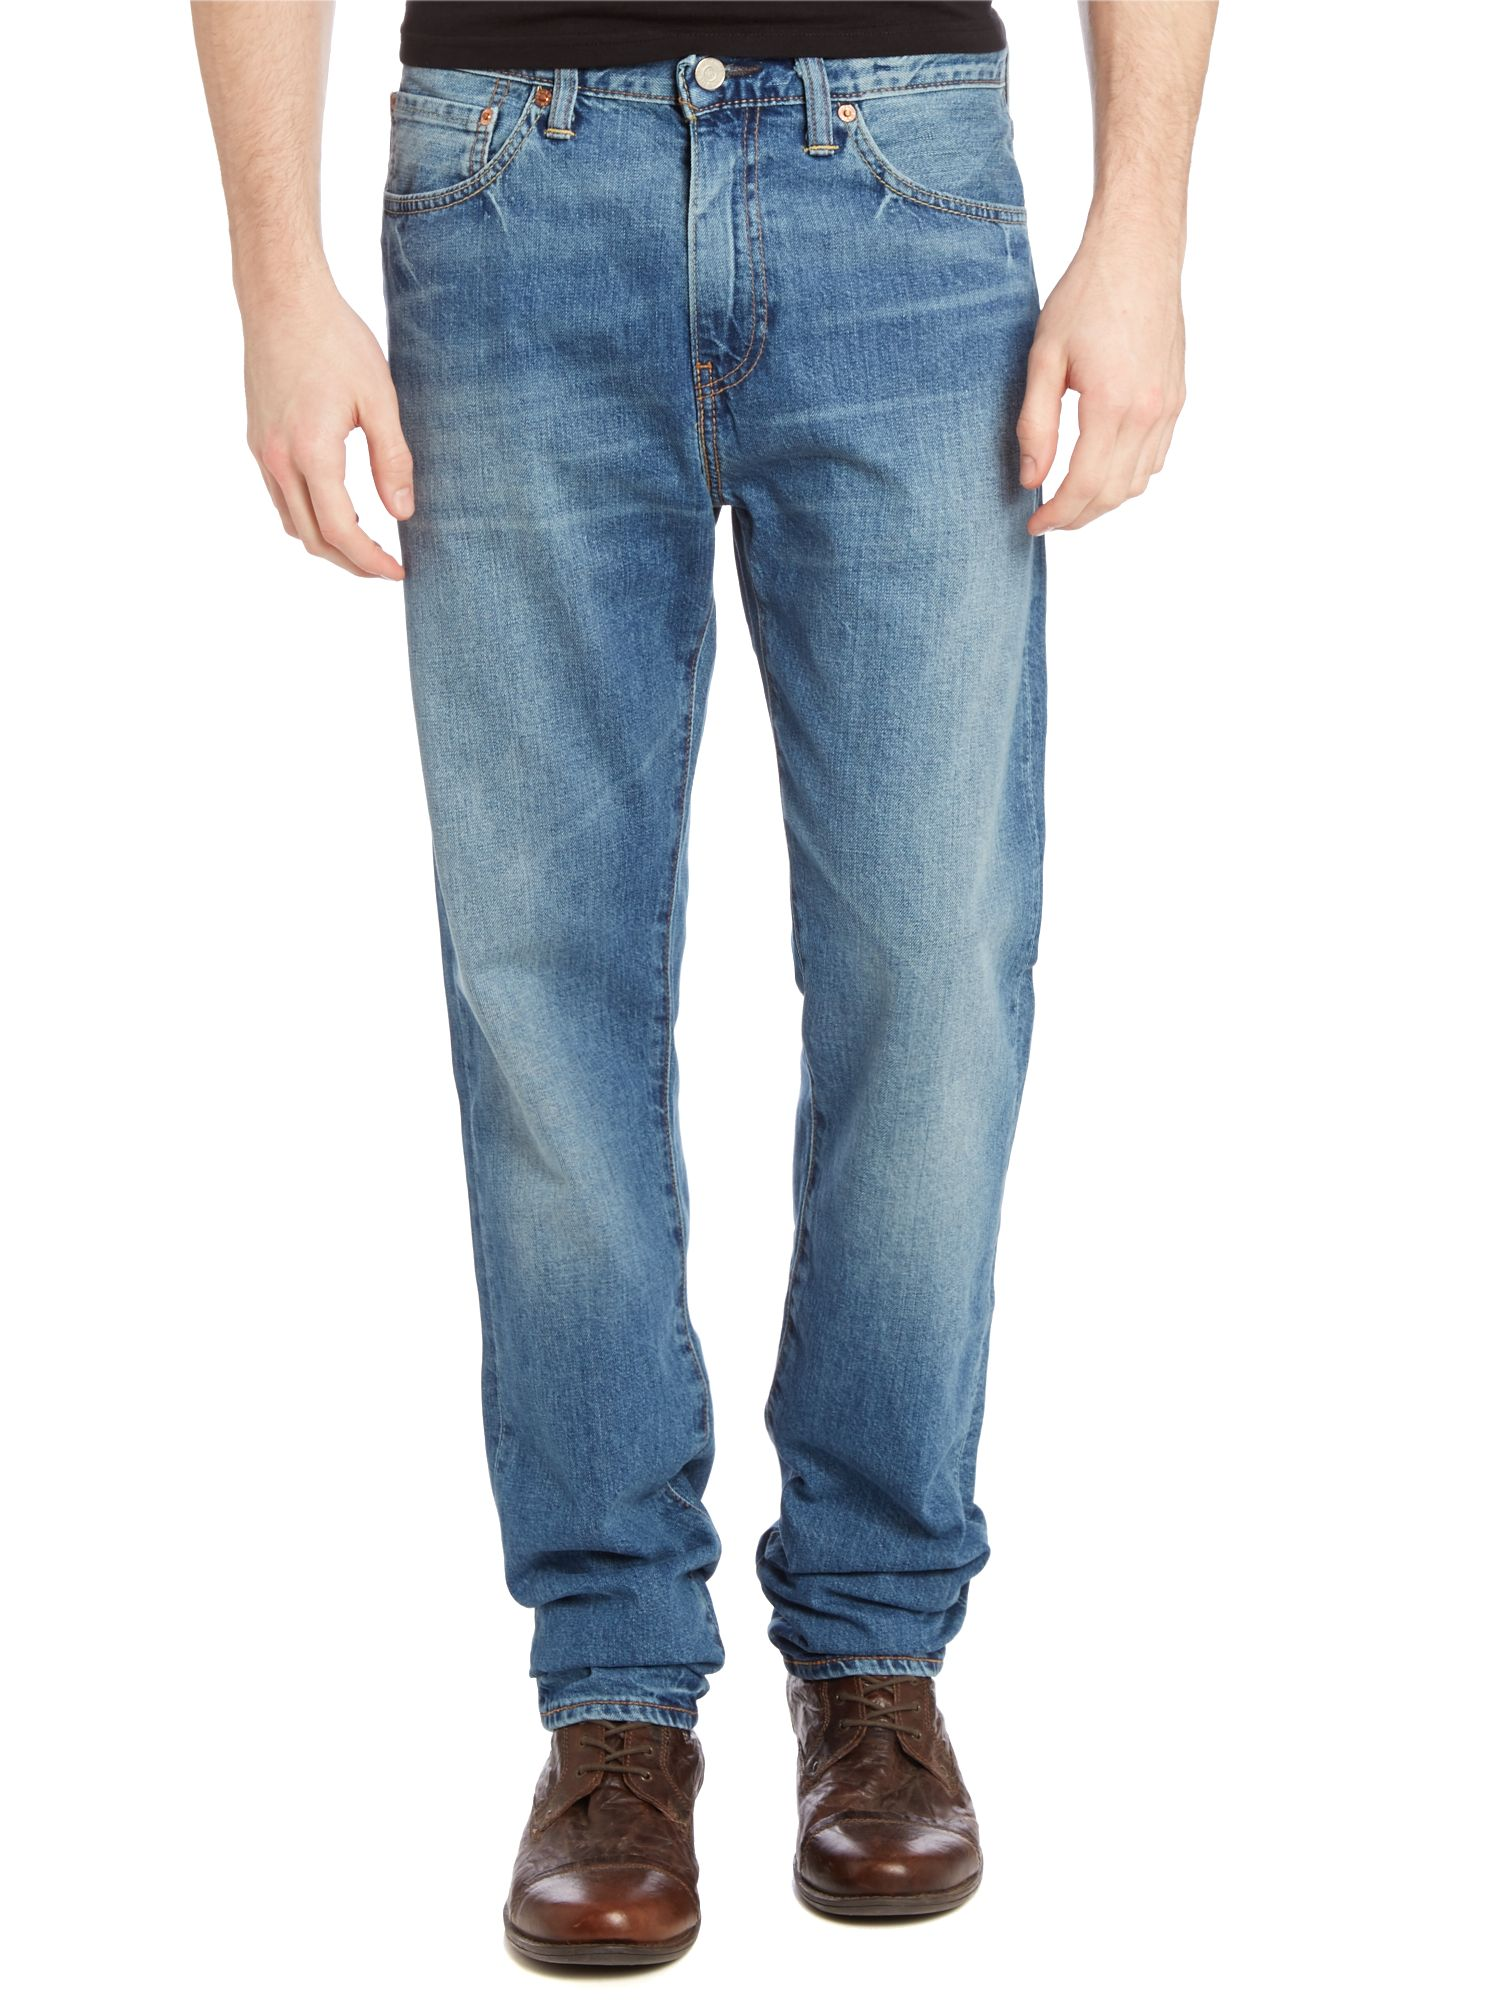 508 marin taper fit light wash jean